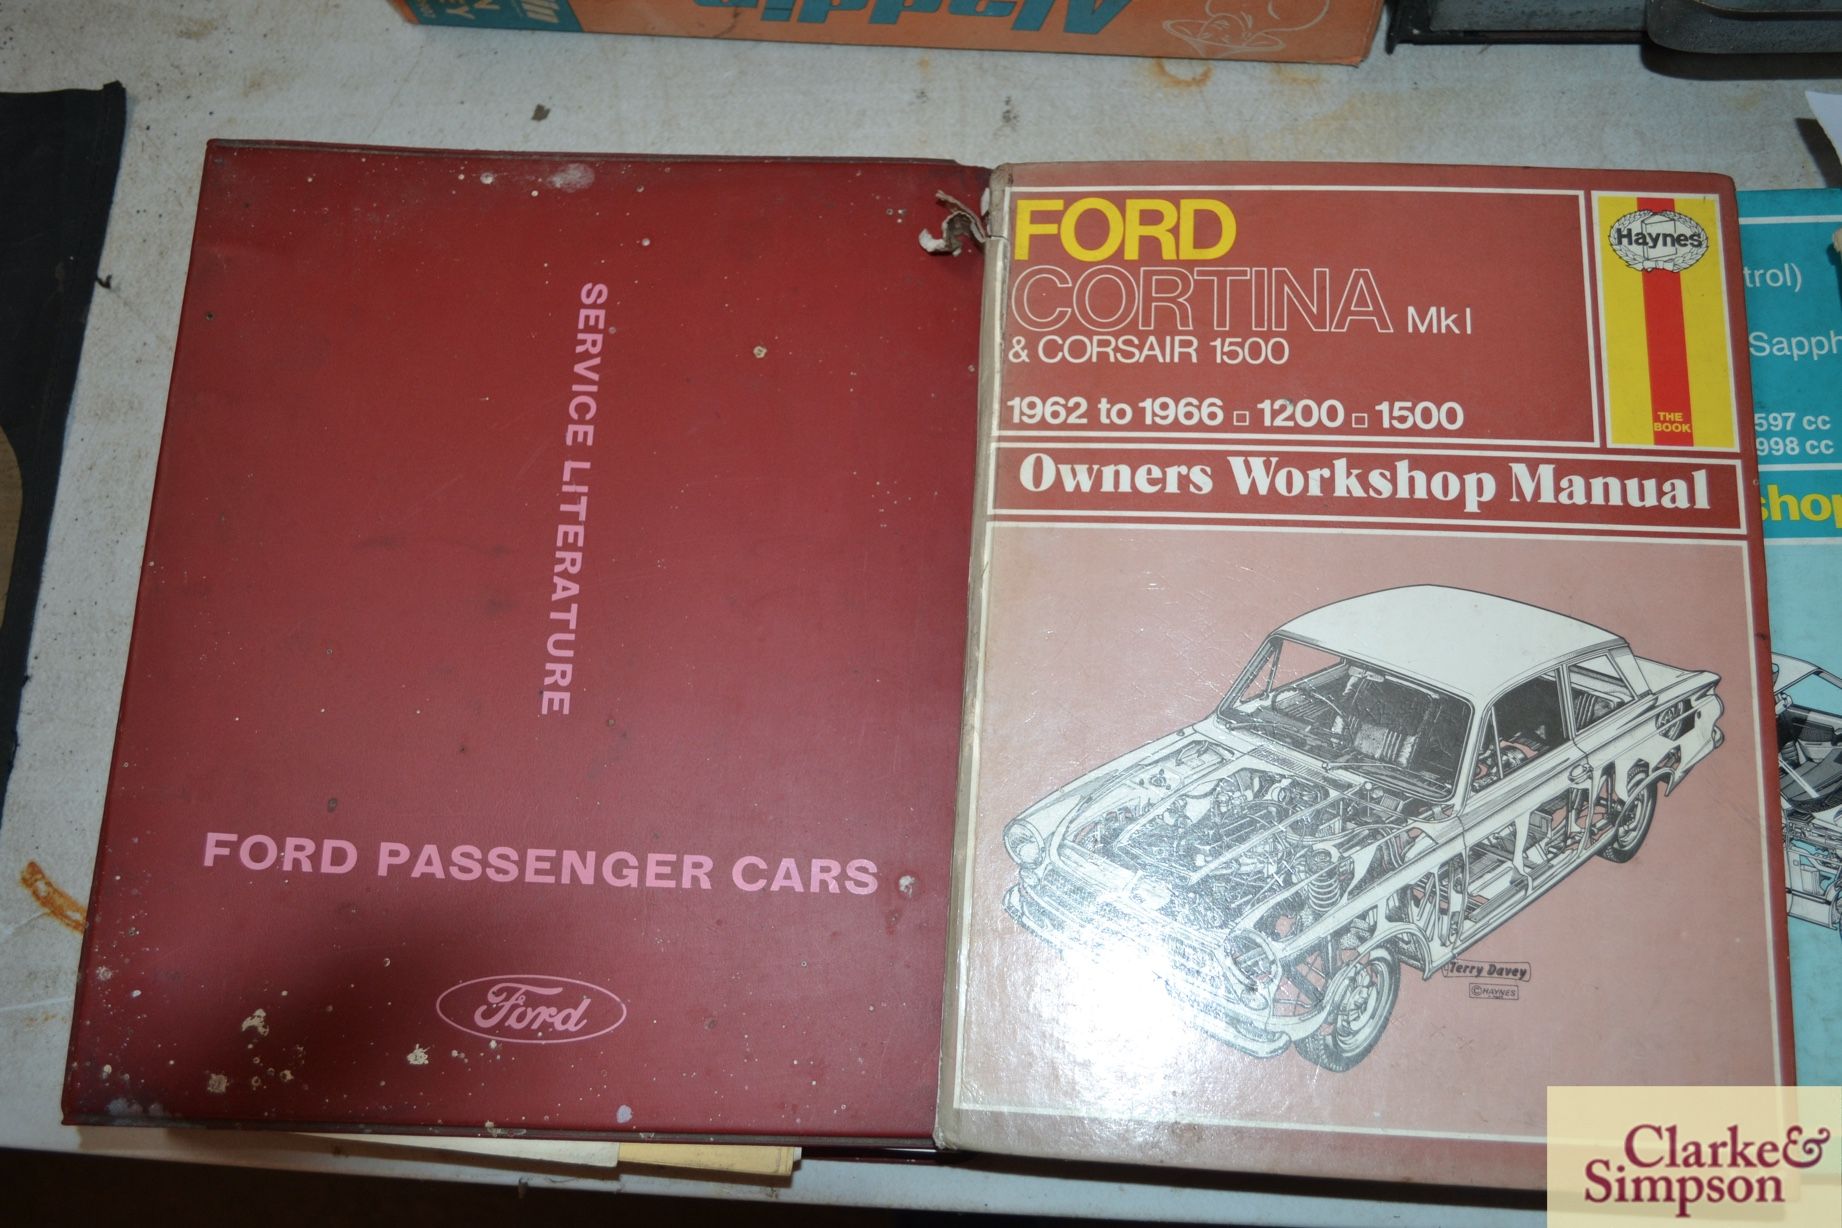 Service Literature for Ford Consol Corsair range, - Image 3 of 3